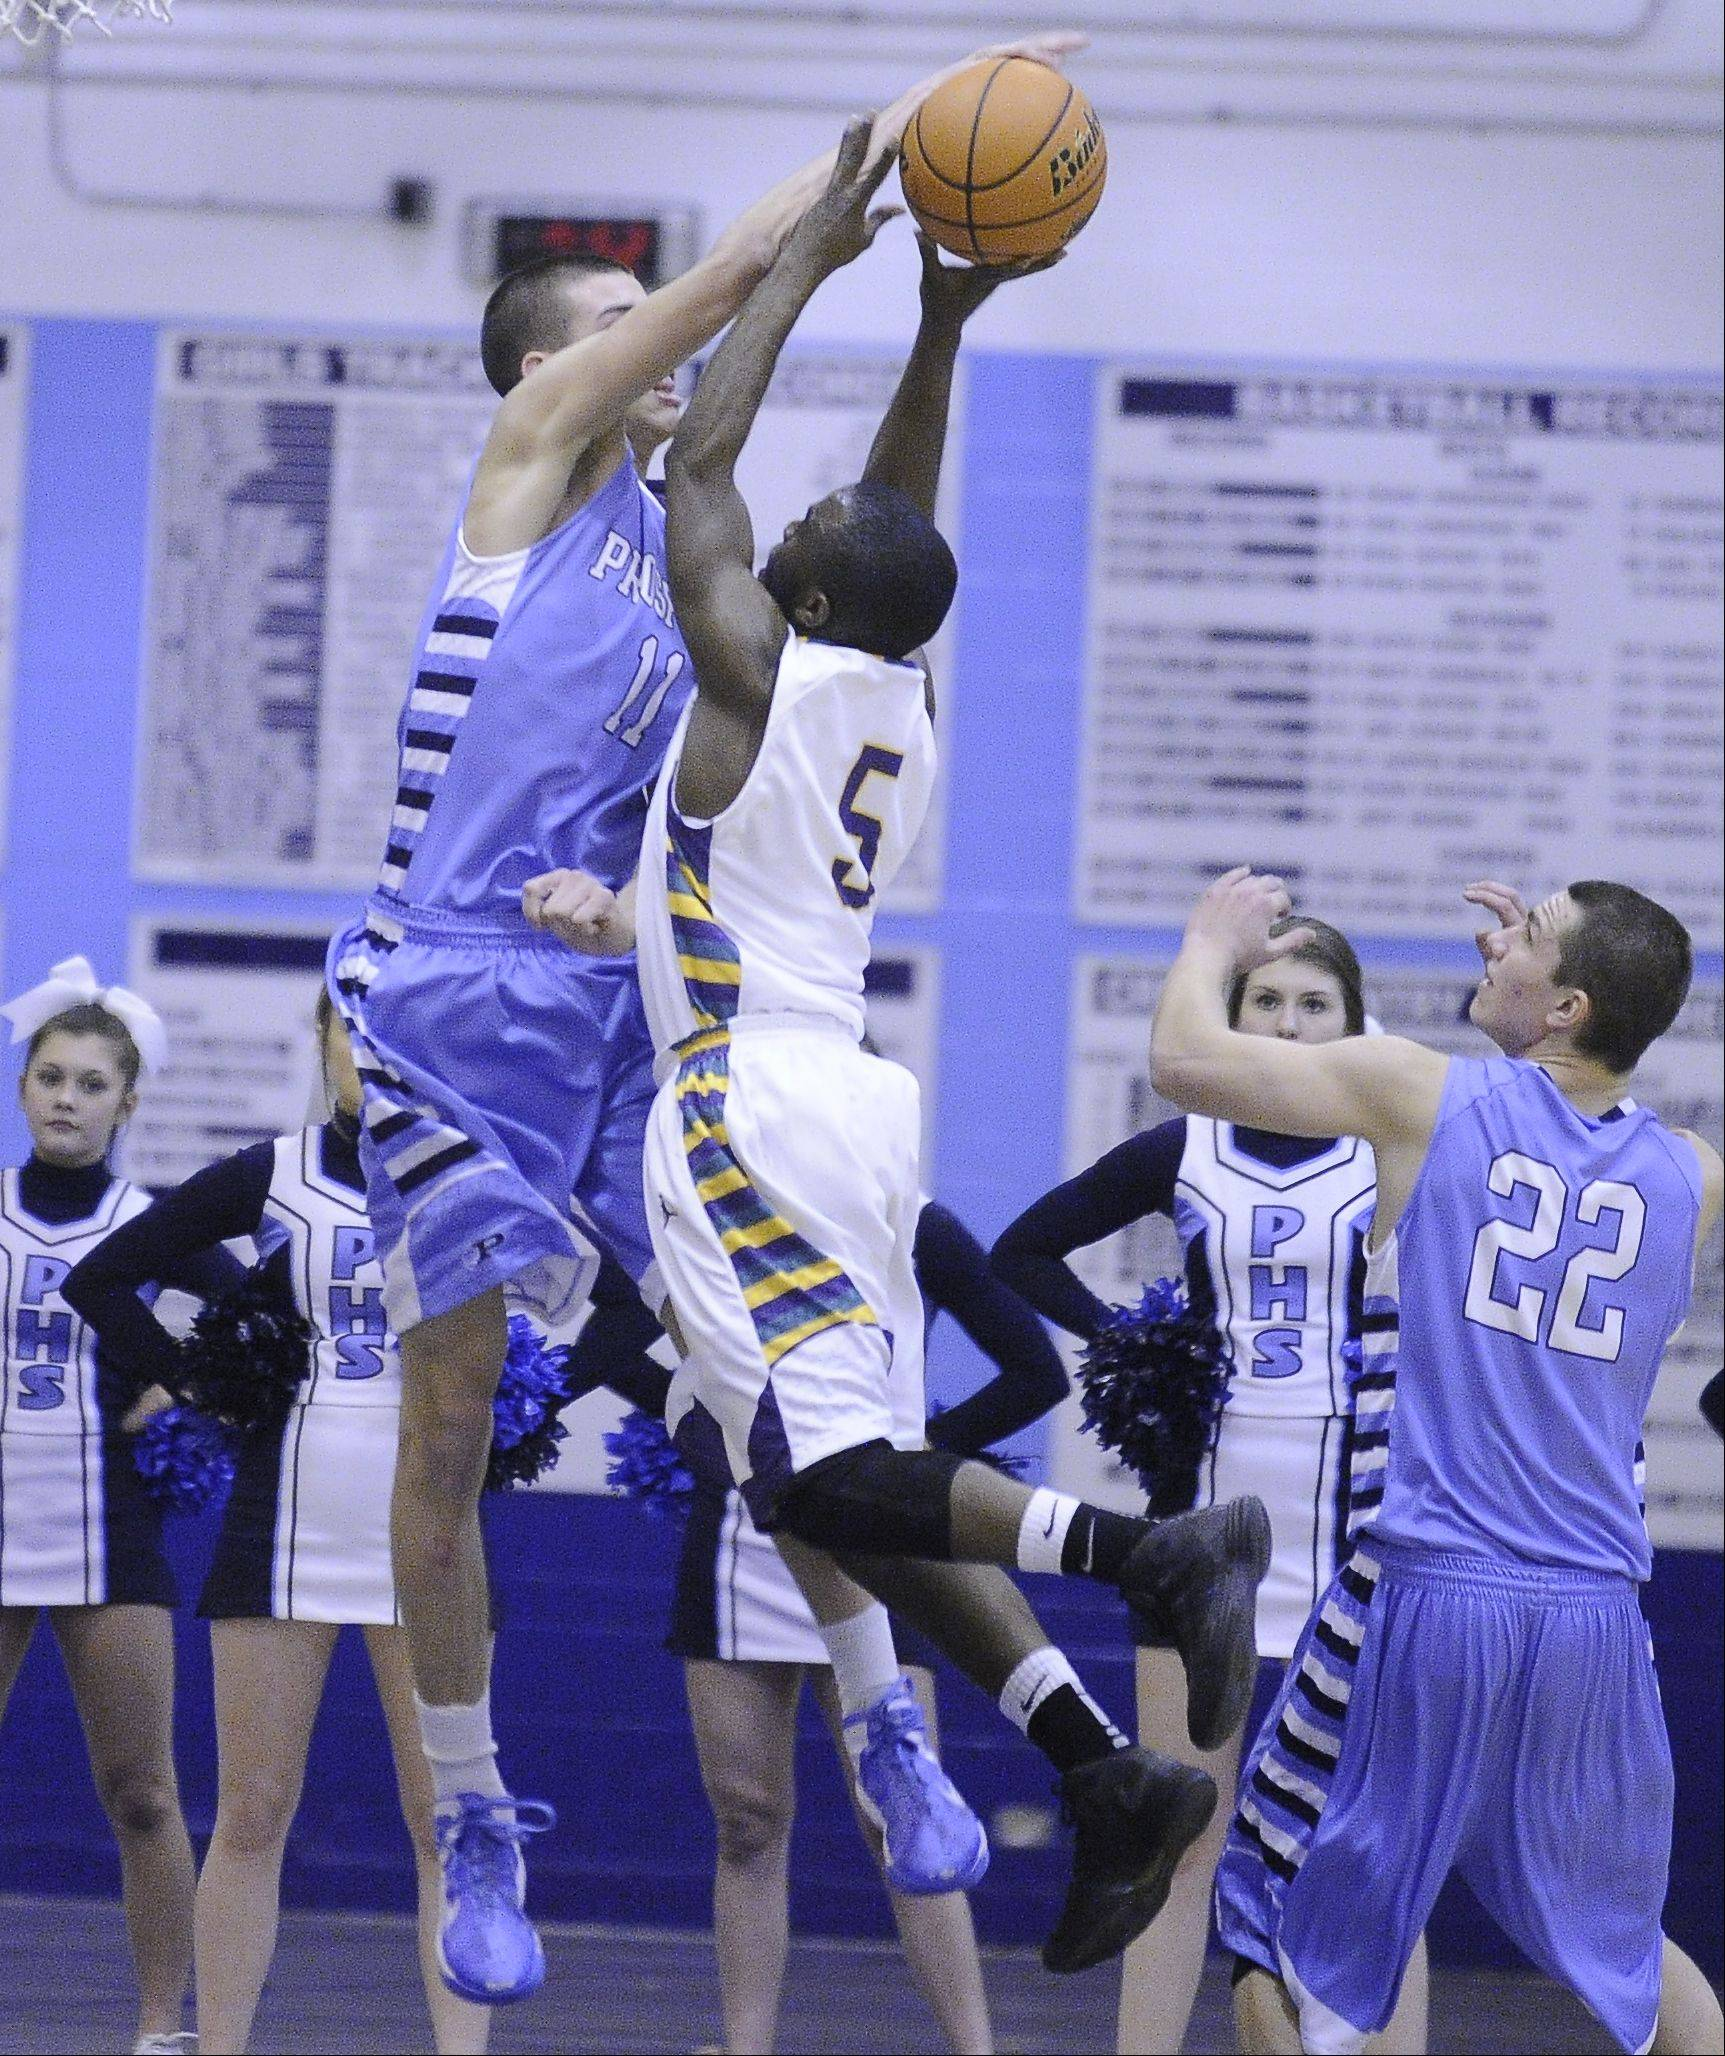 Images from the Prospect vs. Waukegan boys basketball game on Thursday, February 28th, in Mount Prospect.